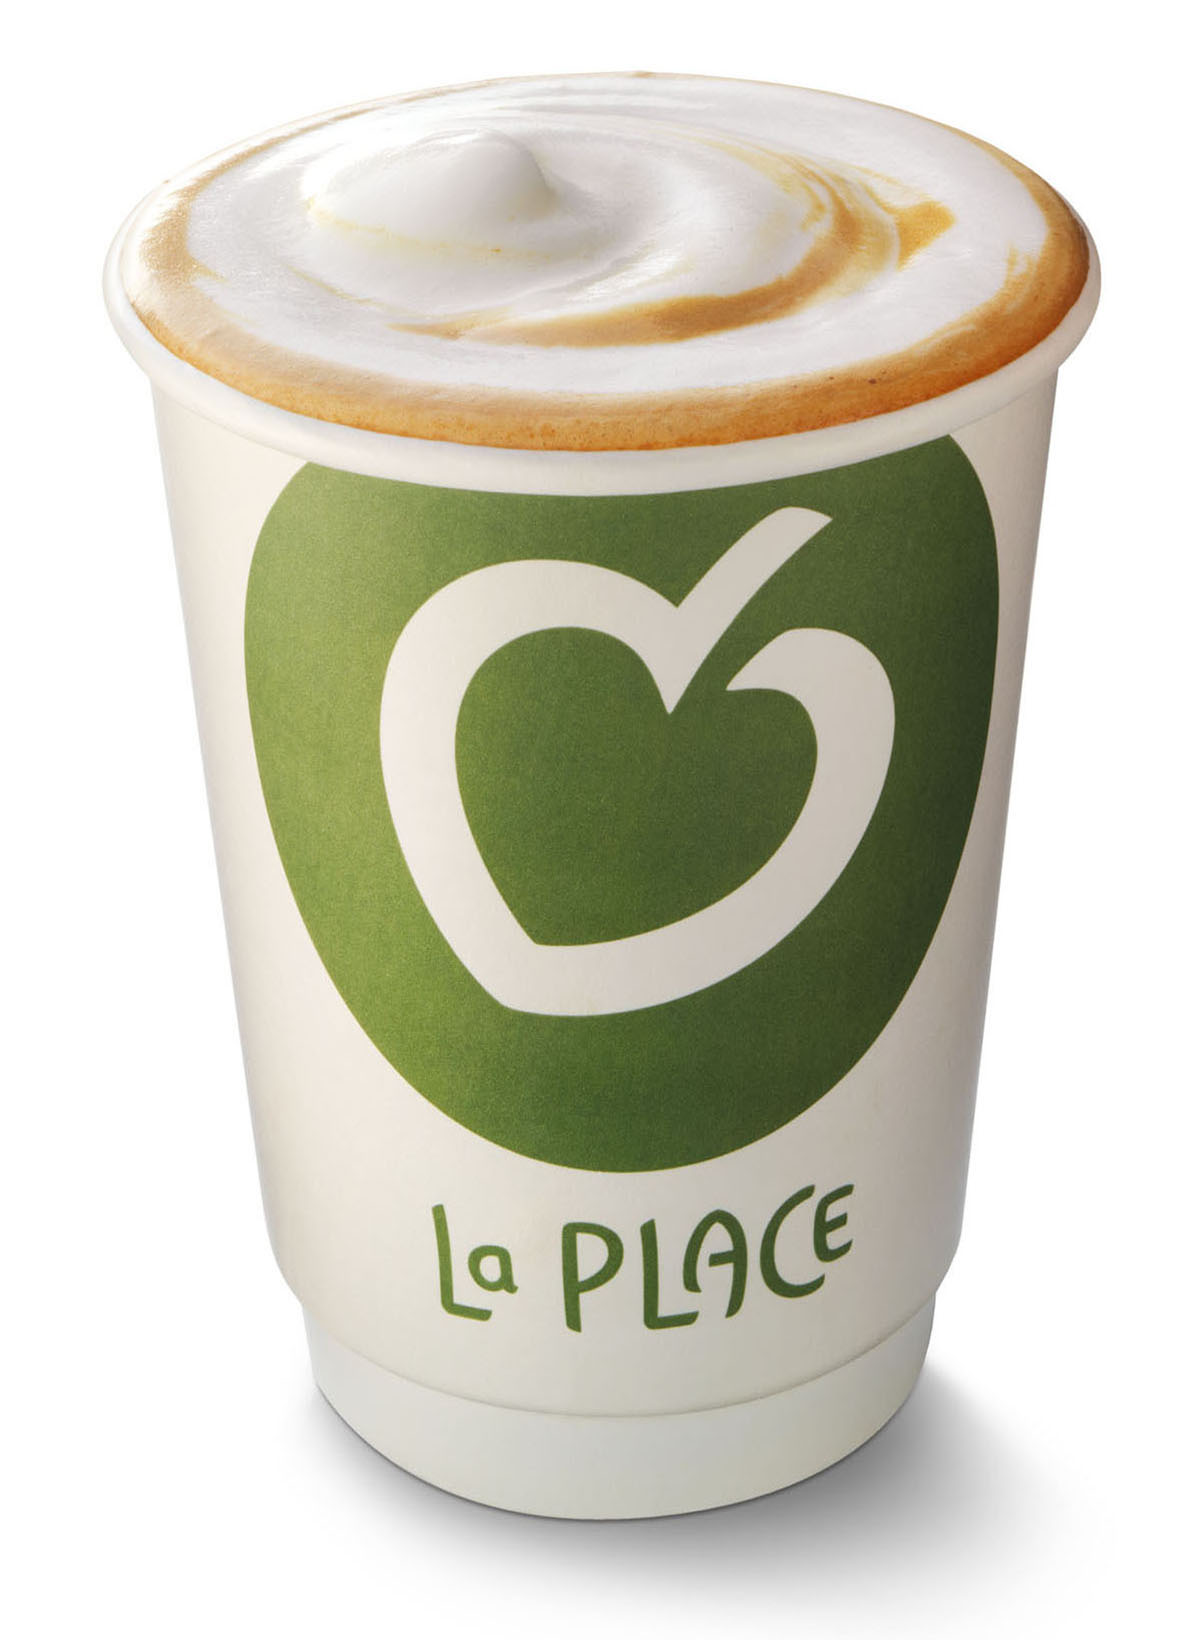 Packshots stylist photography of La Place's cappuccino made by Studio_m Photographer Amsterdam